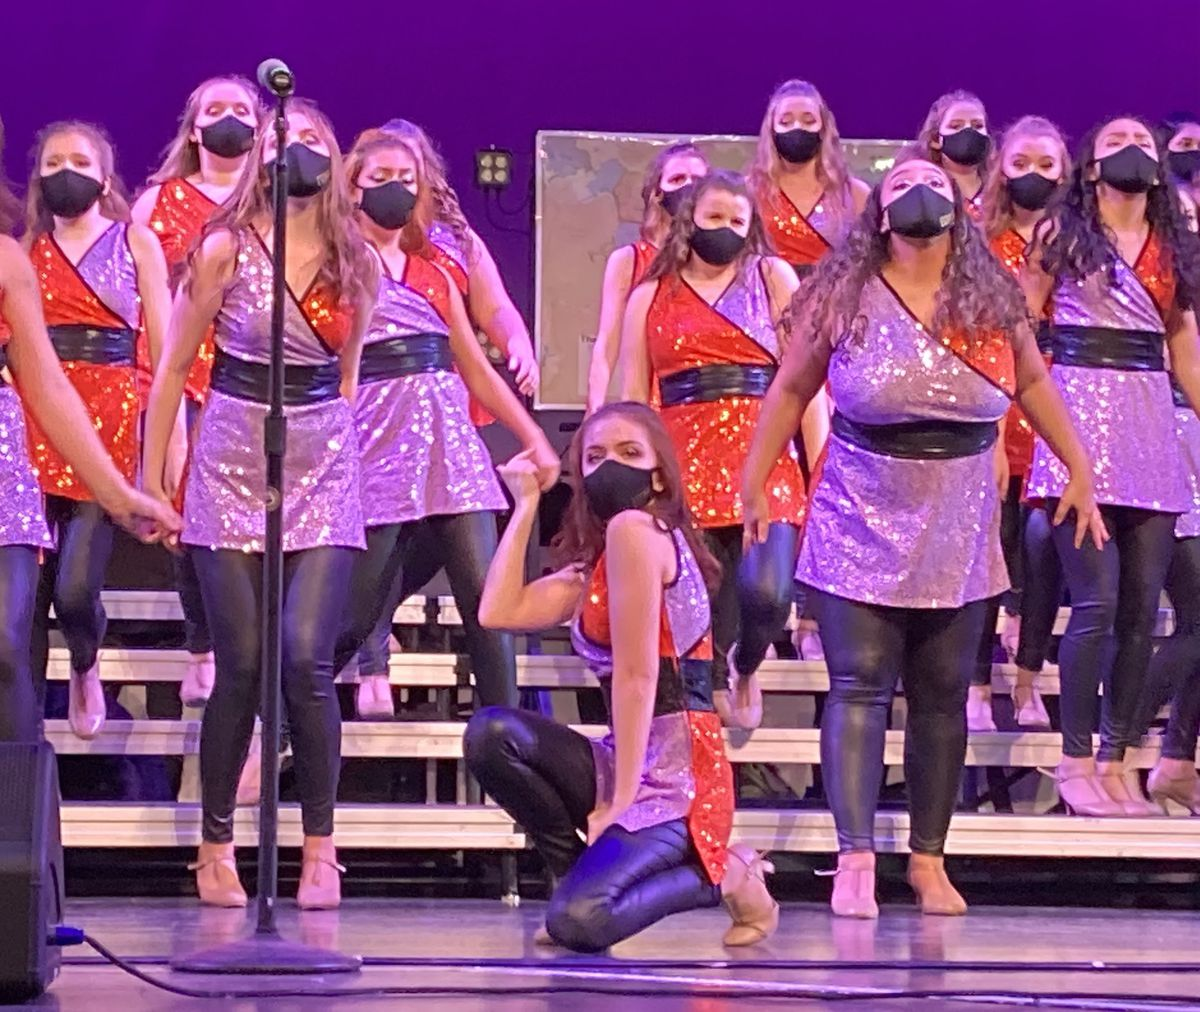 Avon High School's all-girls show choir competed during the pandemic wearing matching masks.